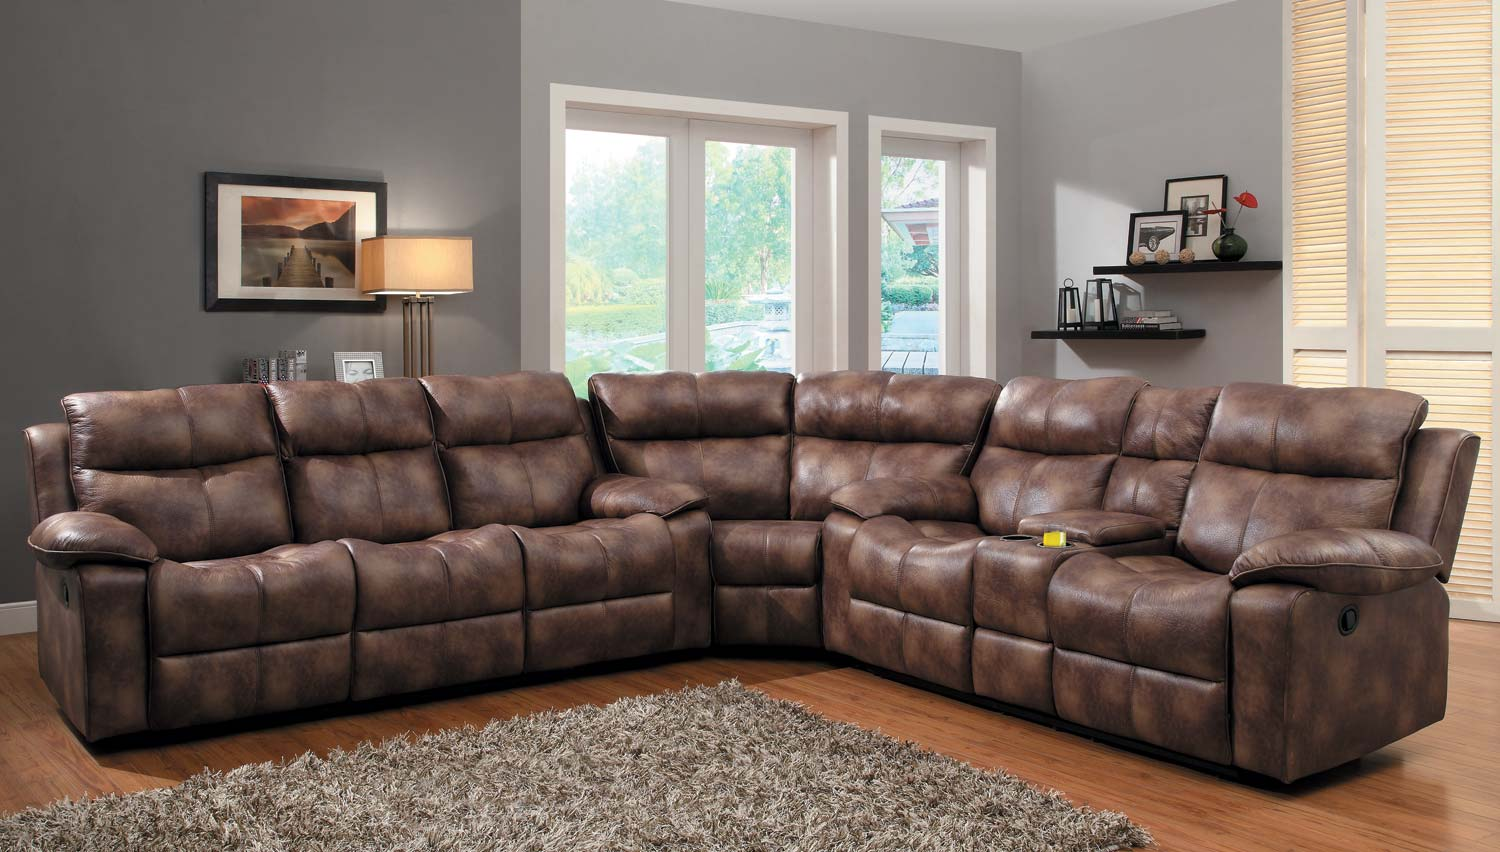 Homelegance Brooklyn Heights Reclining Sectional Sofa Set - Polished Microfiber U9635PM-SECT ...